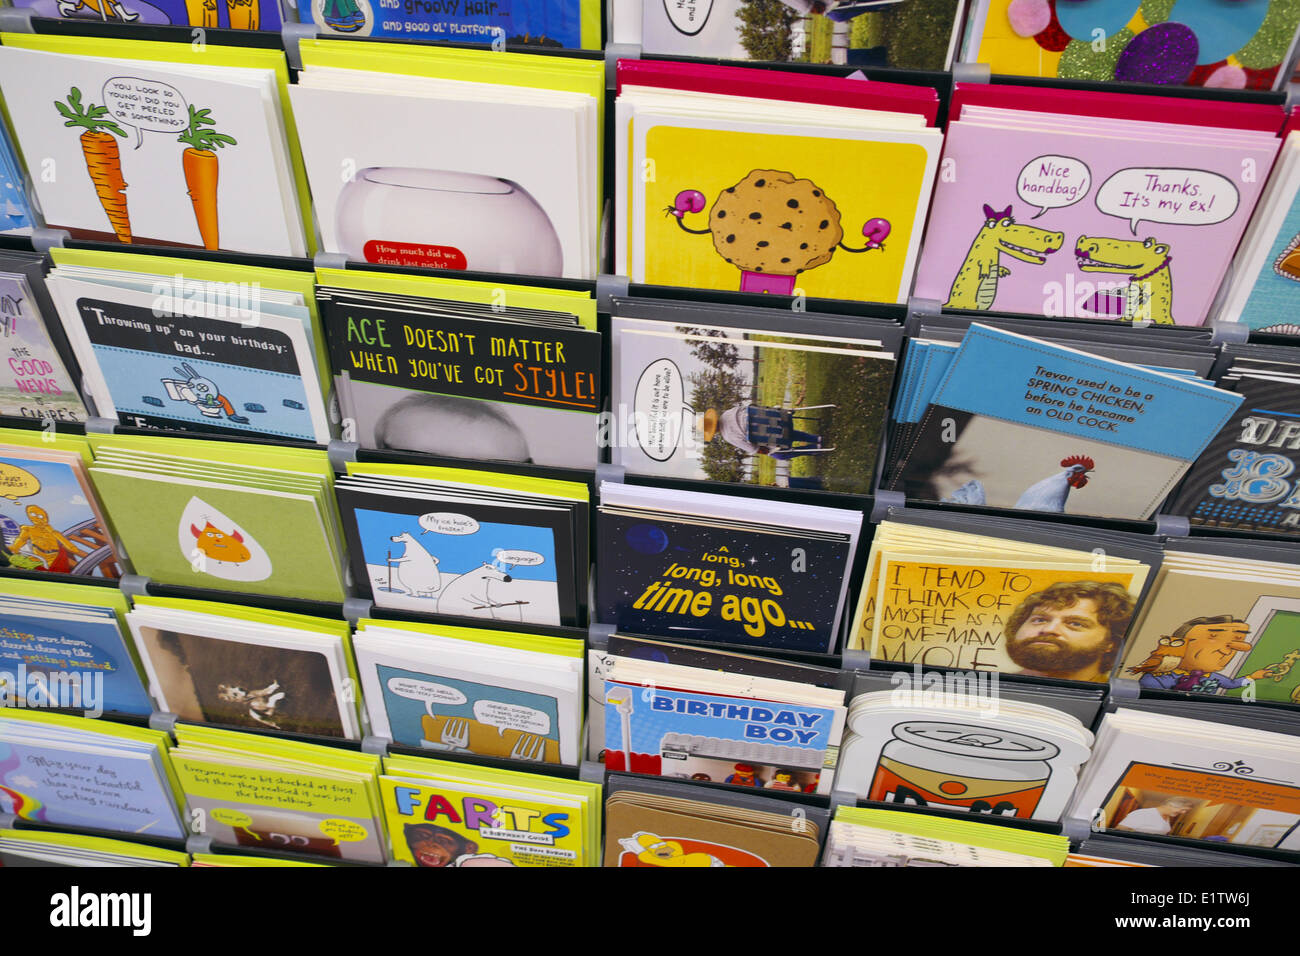 Birthday Cards Shop Photos Birthday Cards Shop – Birthday Cards Store